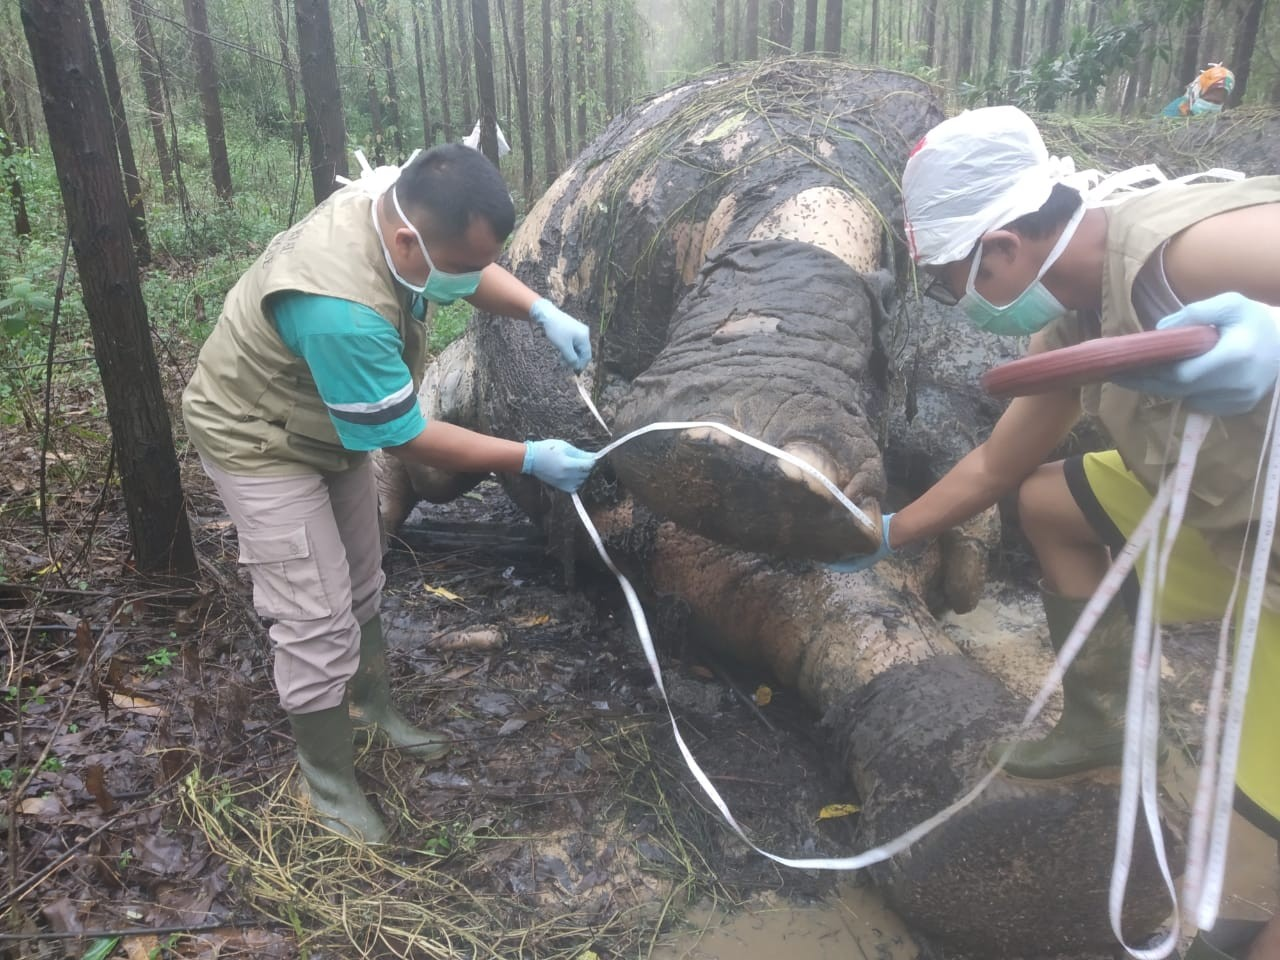 Wild elephant found dead with severed tusks, trunk in concession area in Riau